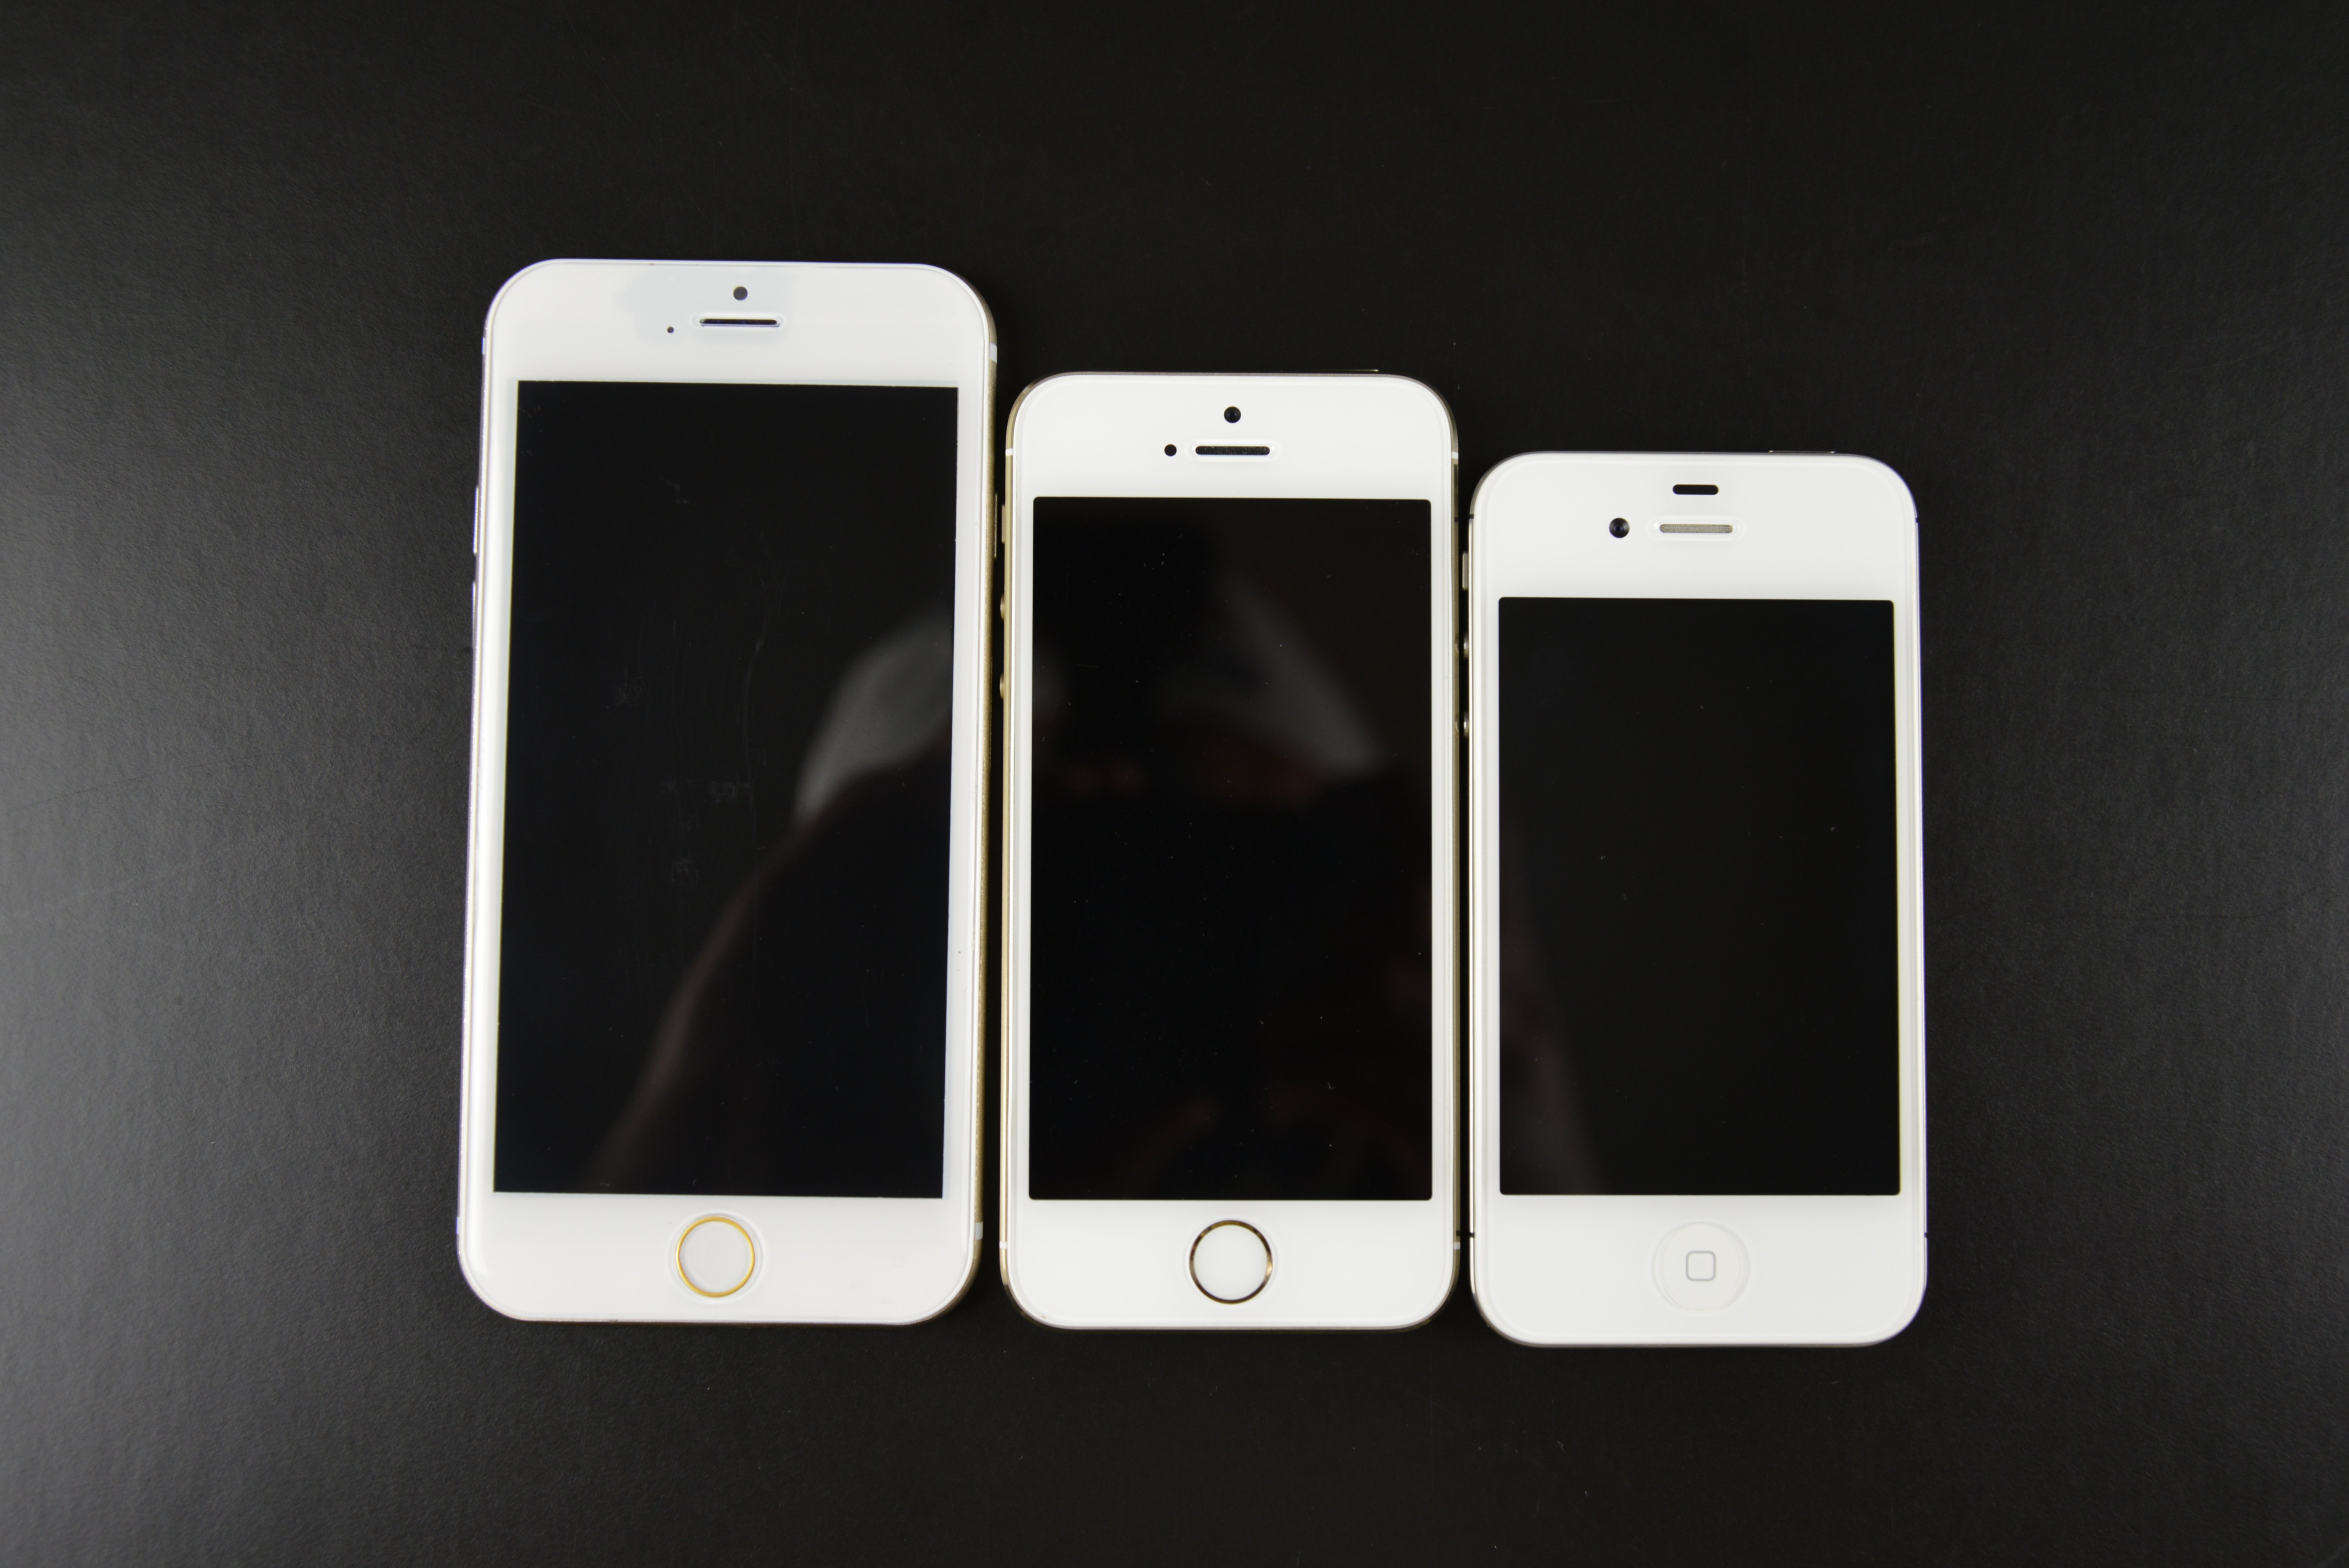 a visual look at apple 39 s iphone 6 vs previous iphones. Black Bedroom Furniture Sets. Home Design Ideas